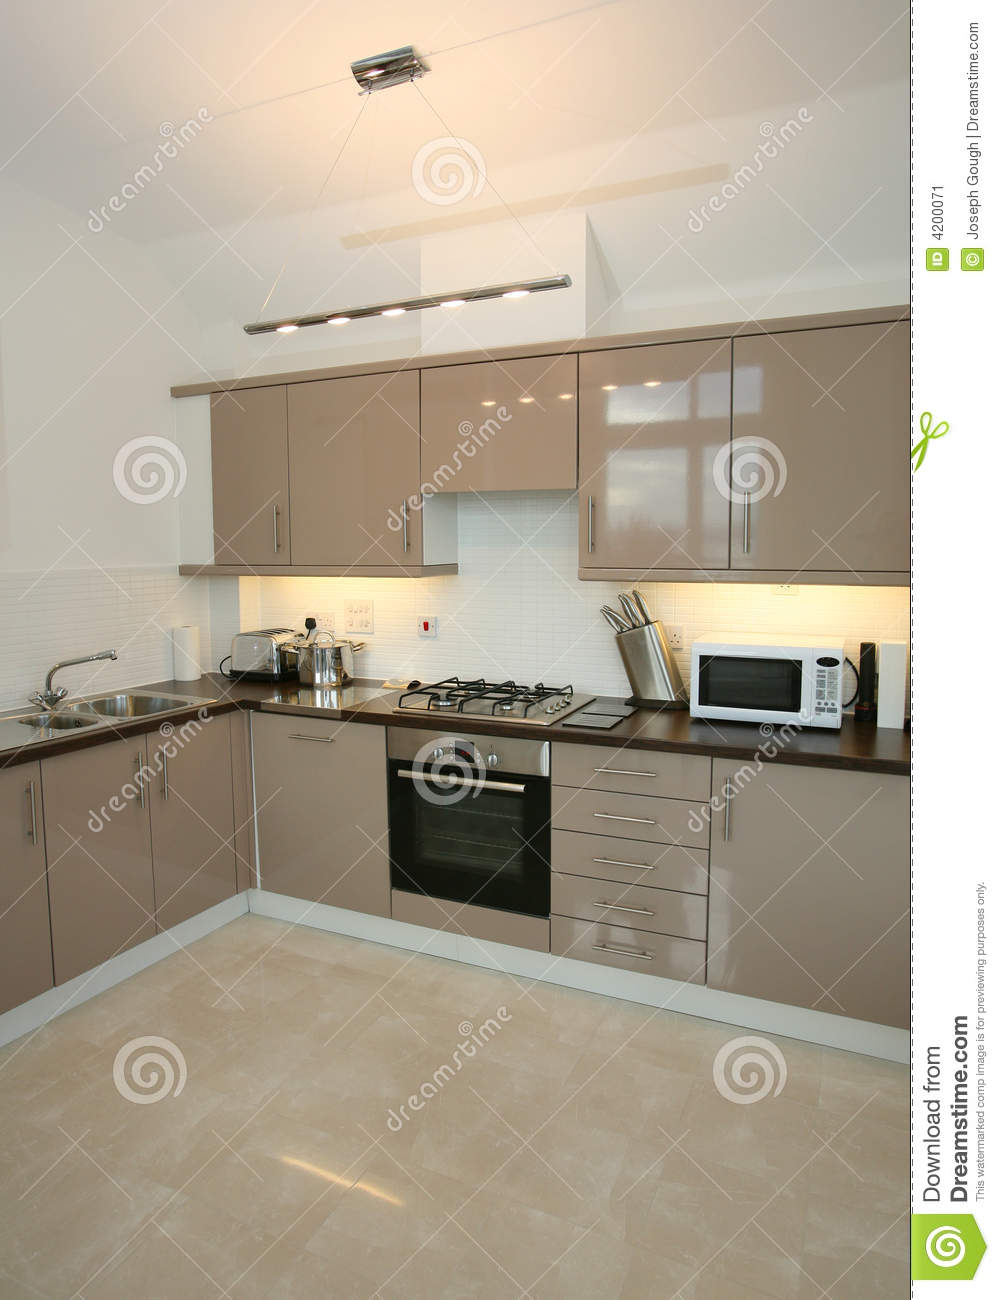 Modern luxury home kitchen interior stock image image 4200071 Modern houses interior kitchen